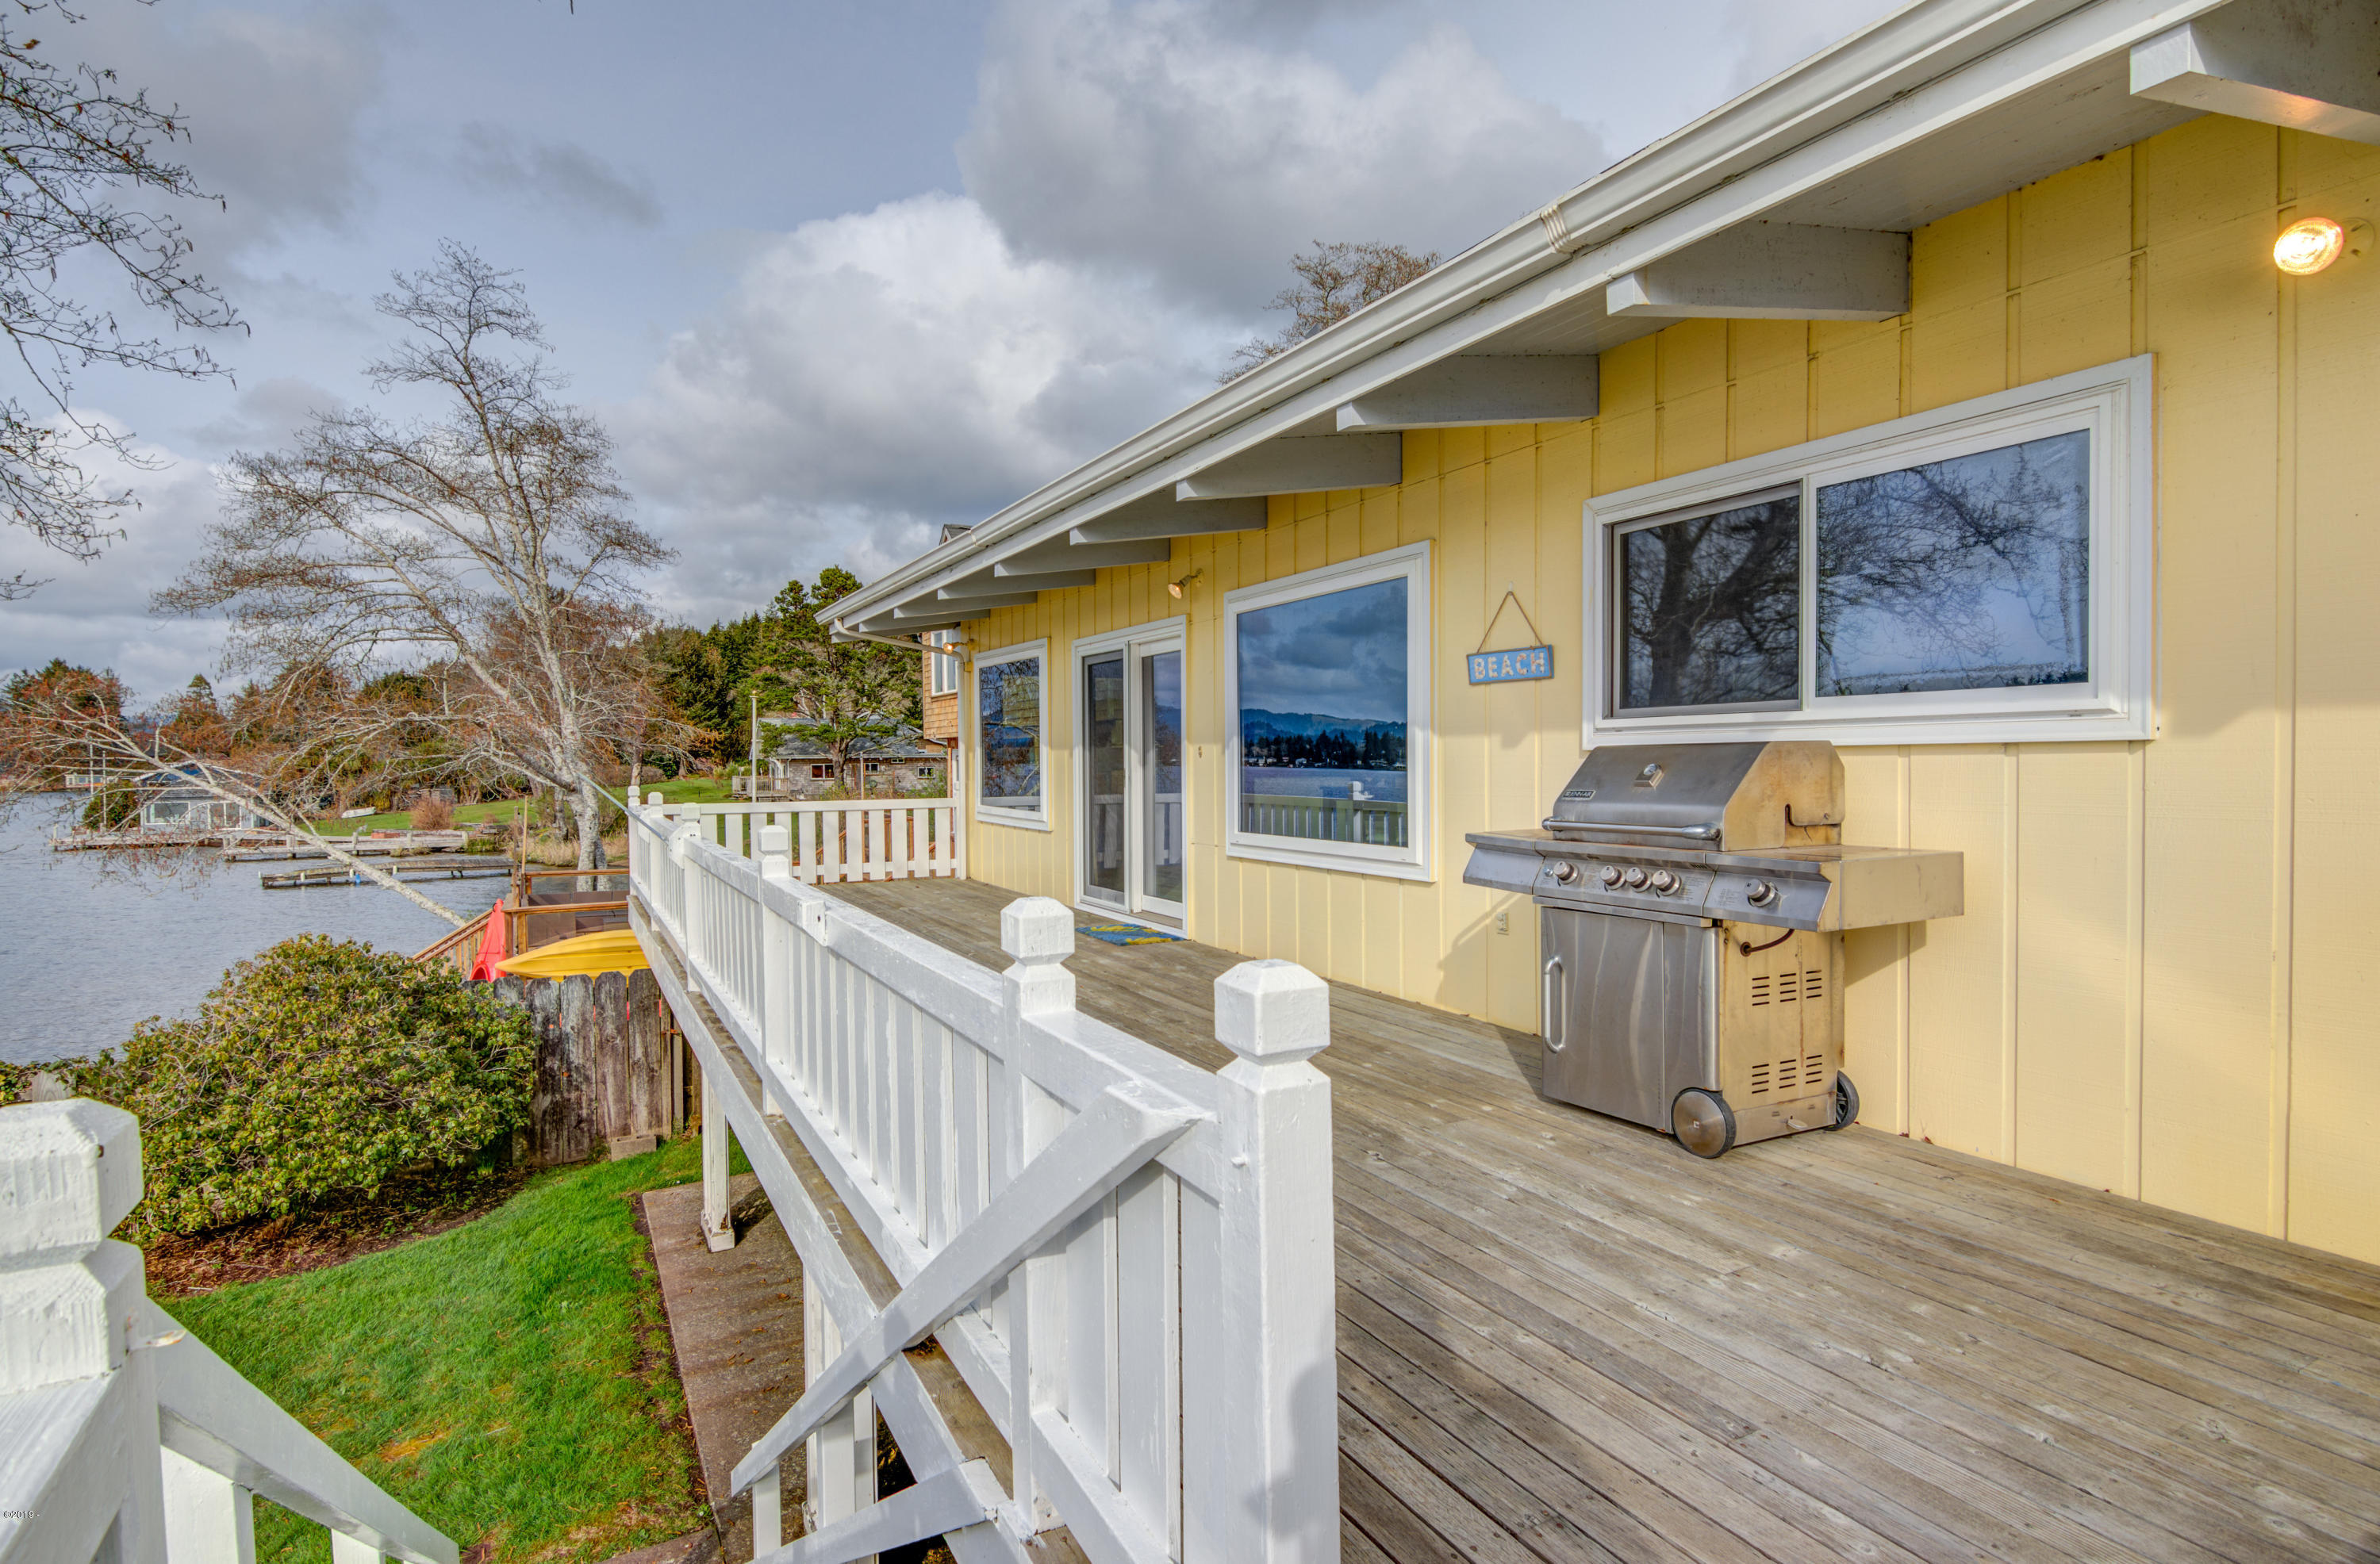 3577 NE 9th St, Otis, OR 97368